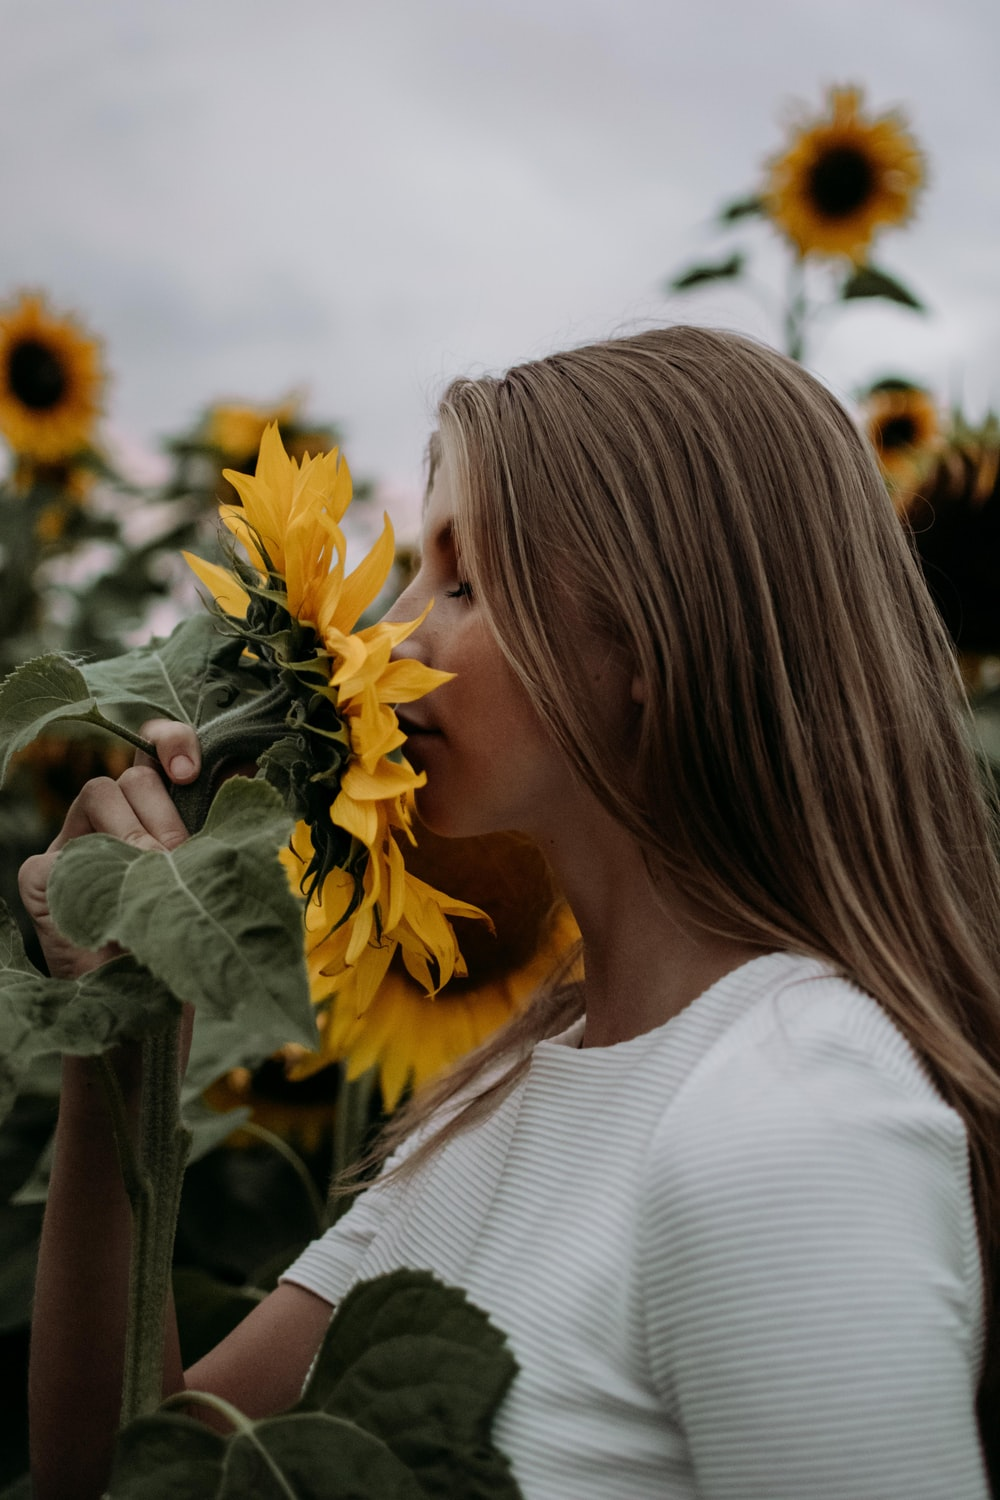 woman in white shirt sniffing sunflower in the middle of sunflower field